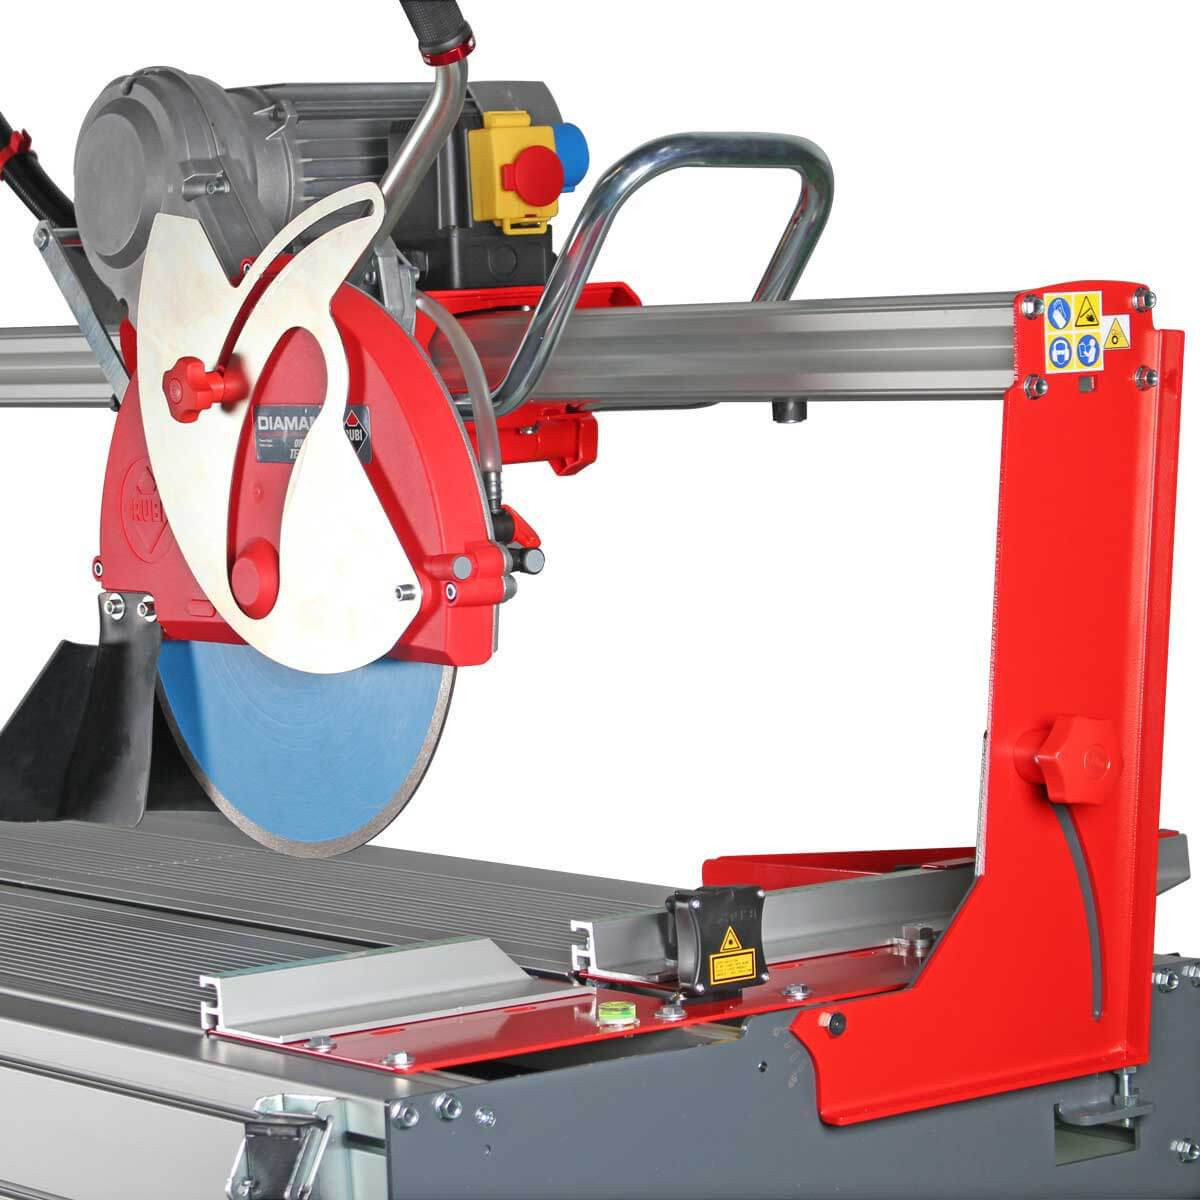 Rubi DX350 rail saw